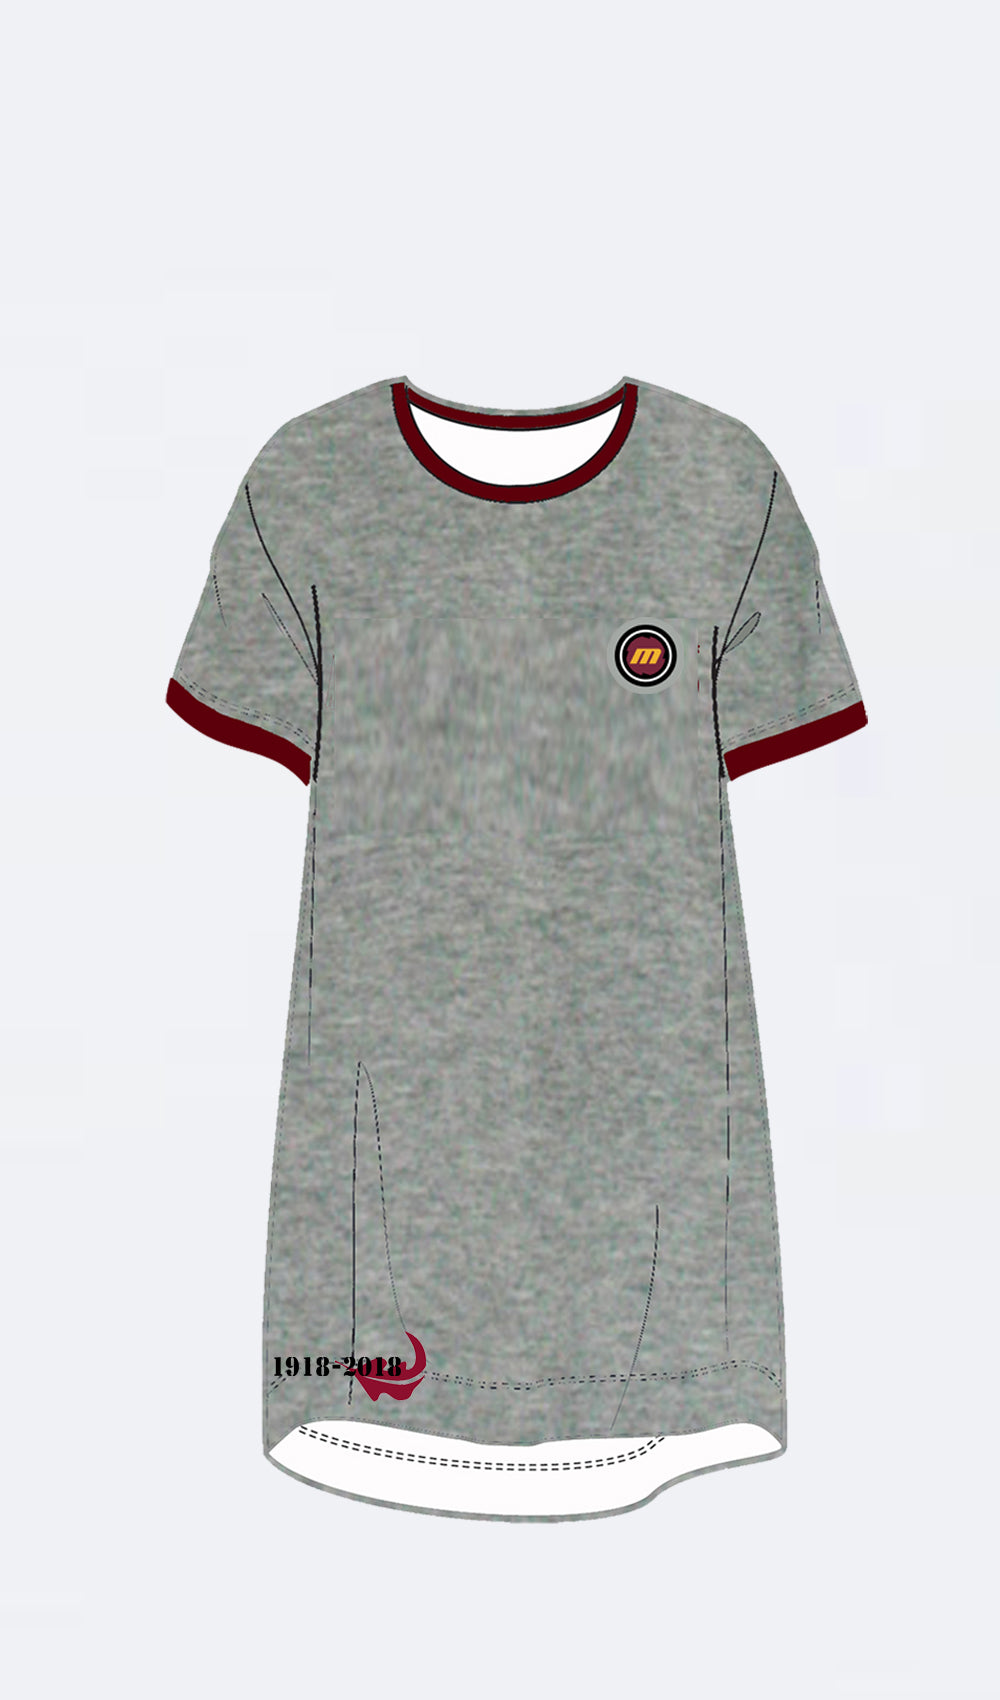 Ellipsis - Maties Ringer Tee Dress